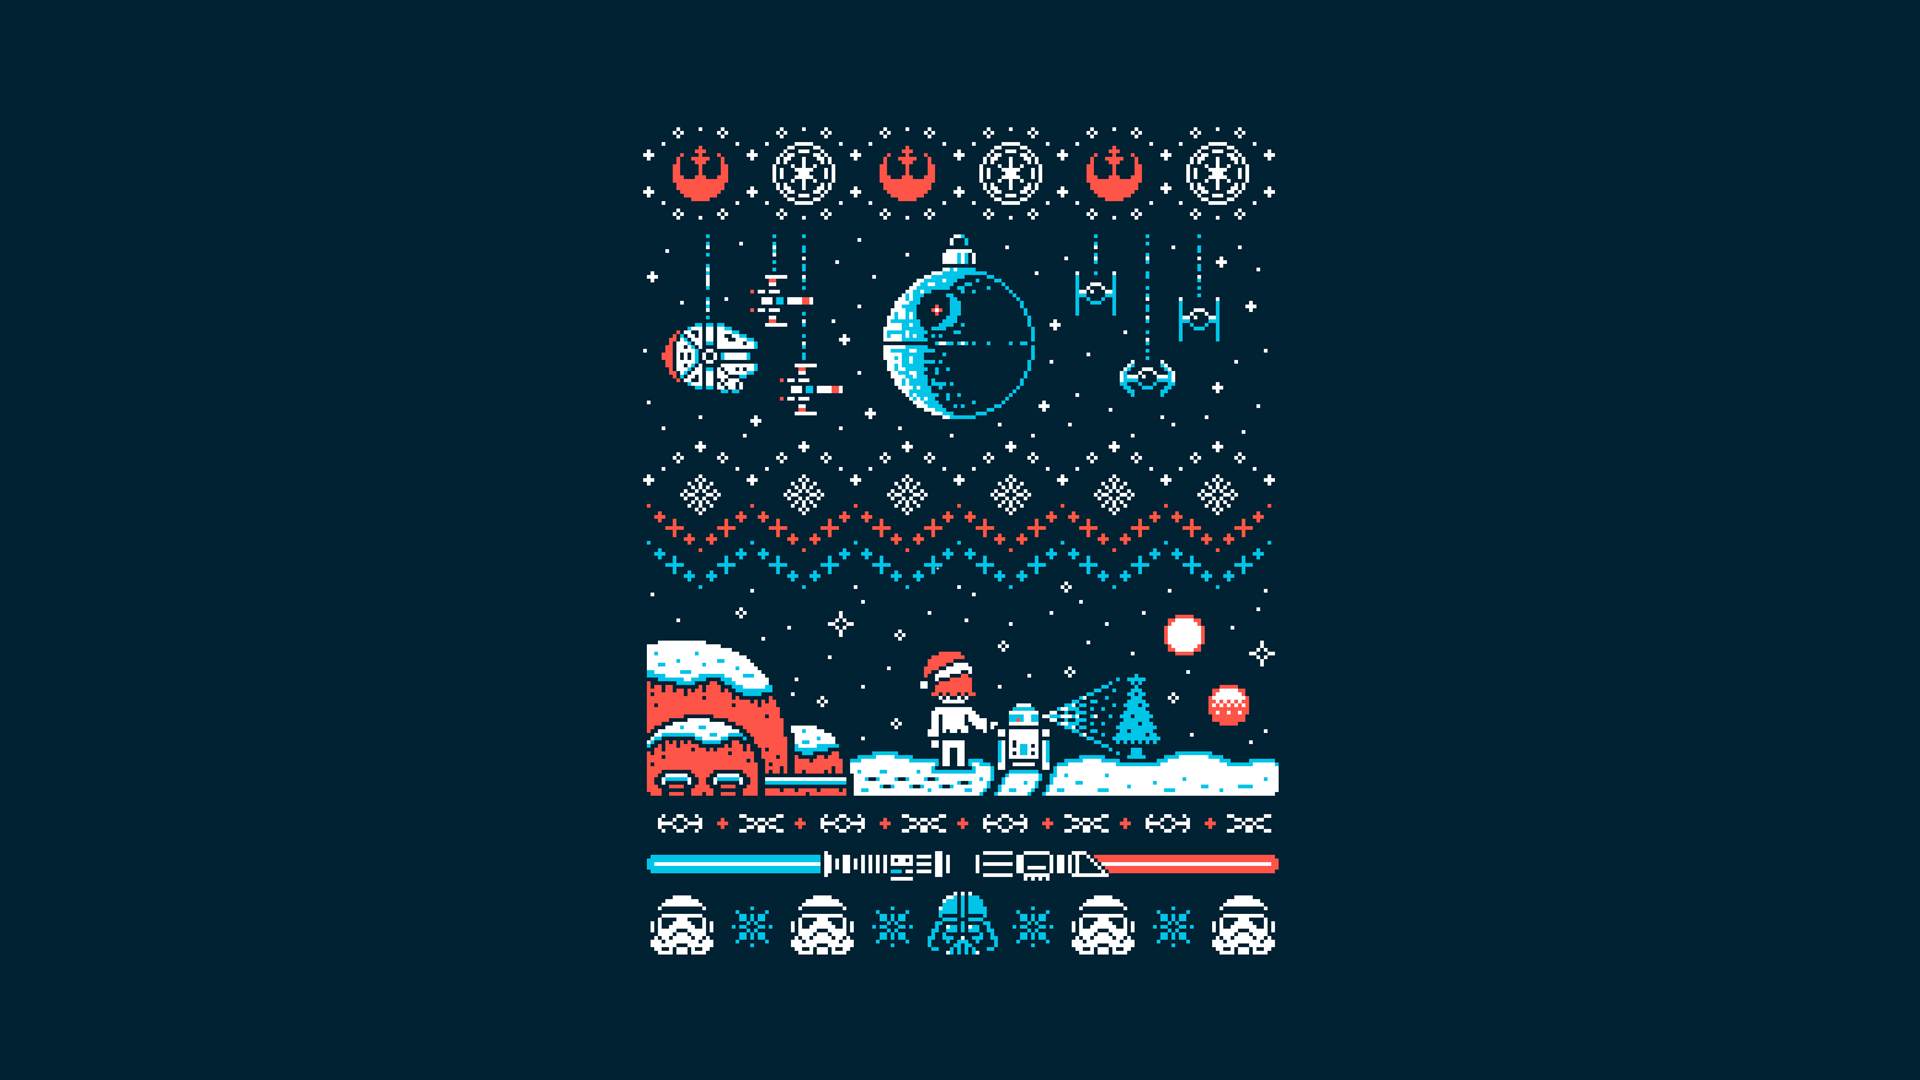 Star Wars Christmas Wallpapers Posted By Ethan Johnson